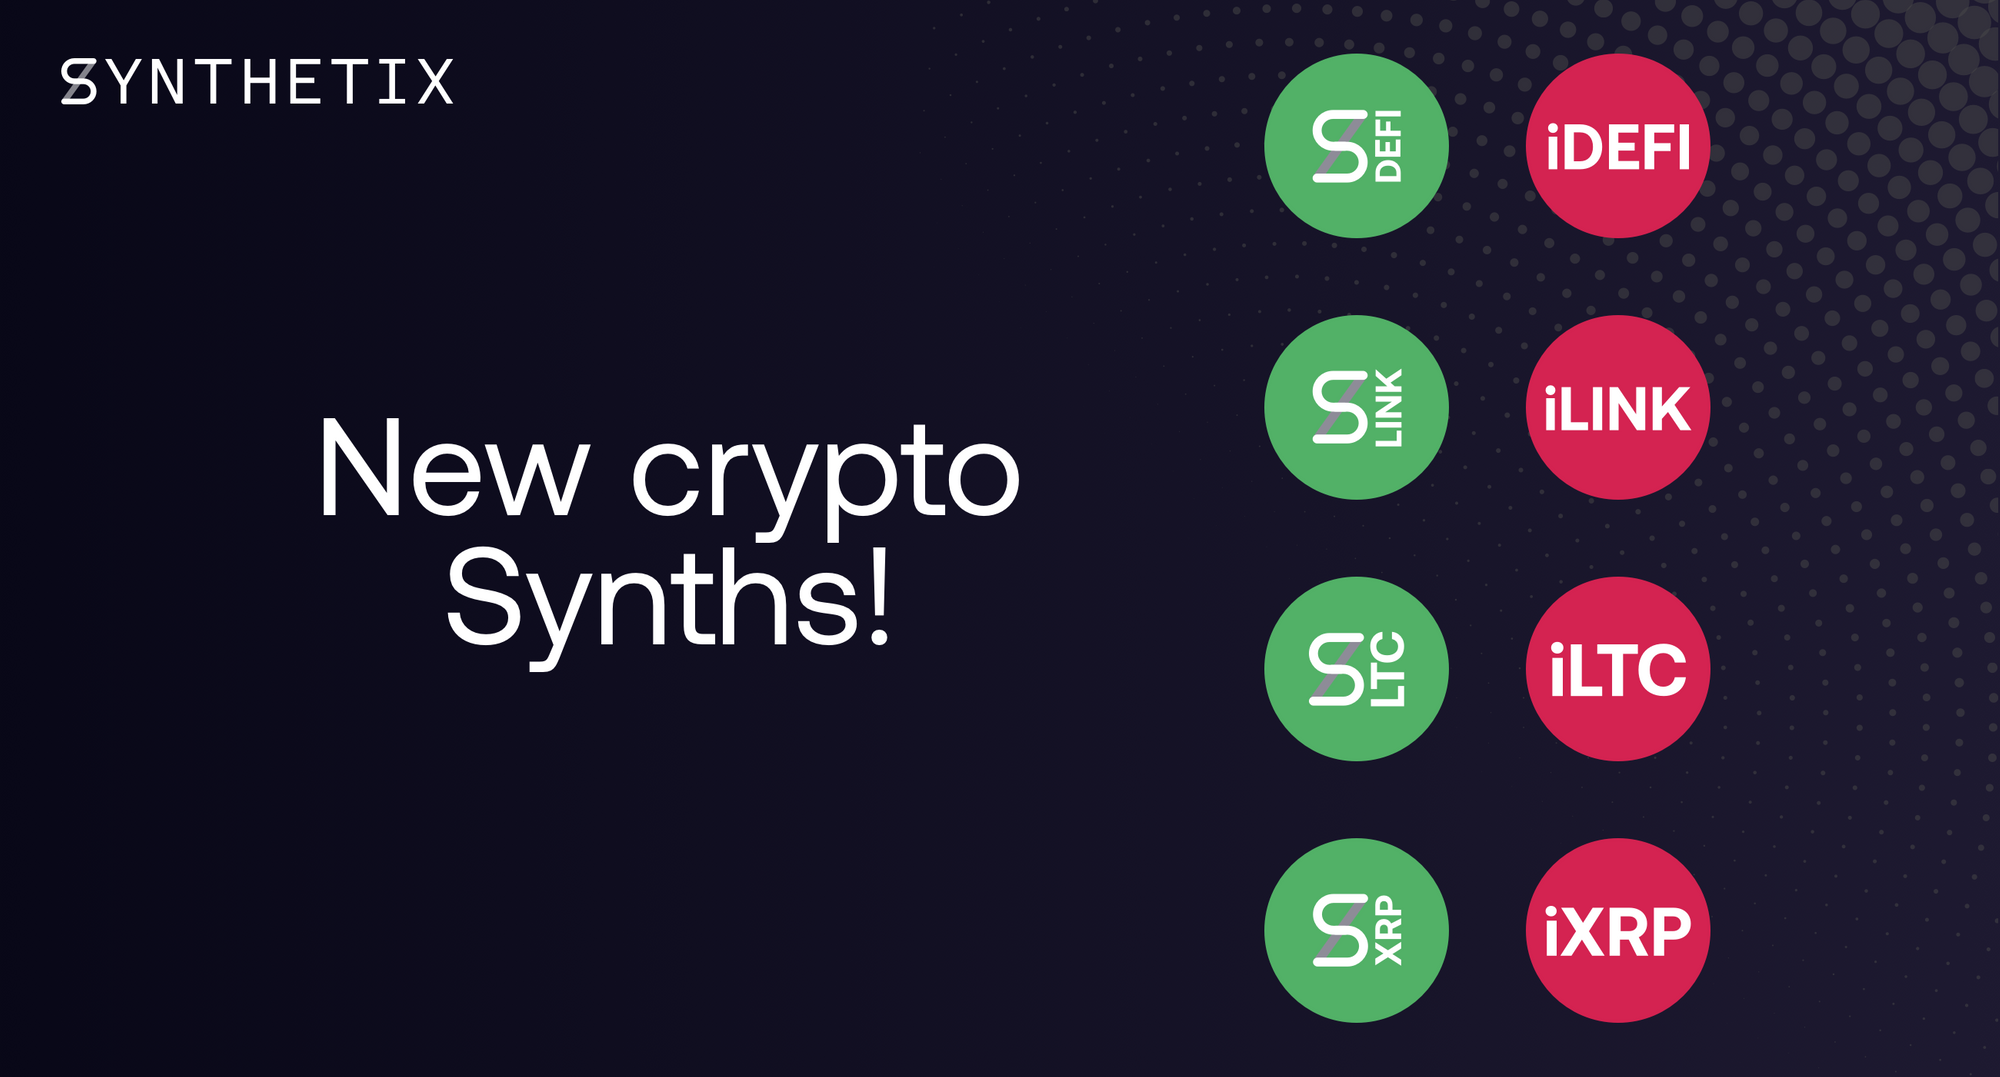 Introducing sDEFI, sLINK, sLTC, sXRP, and their Inverses!